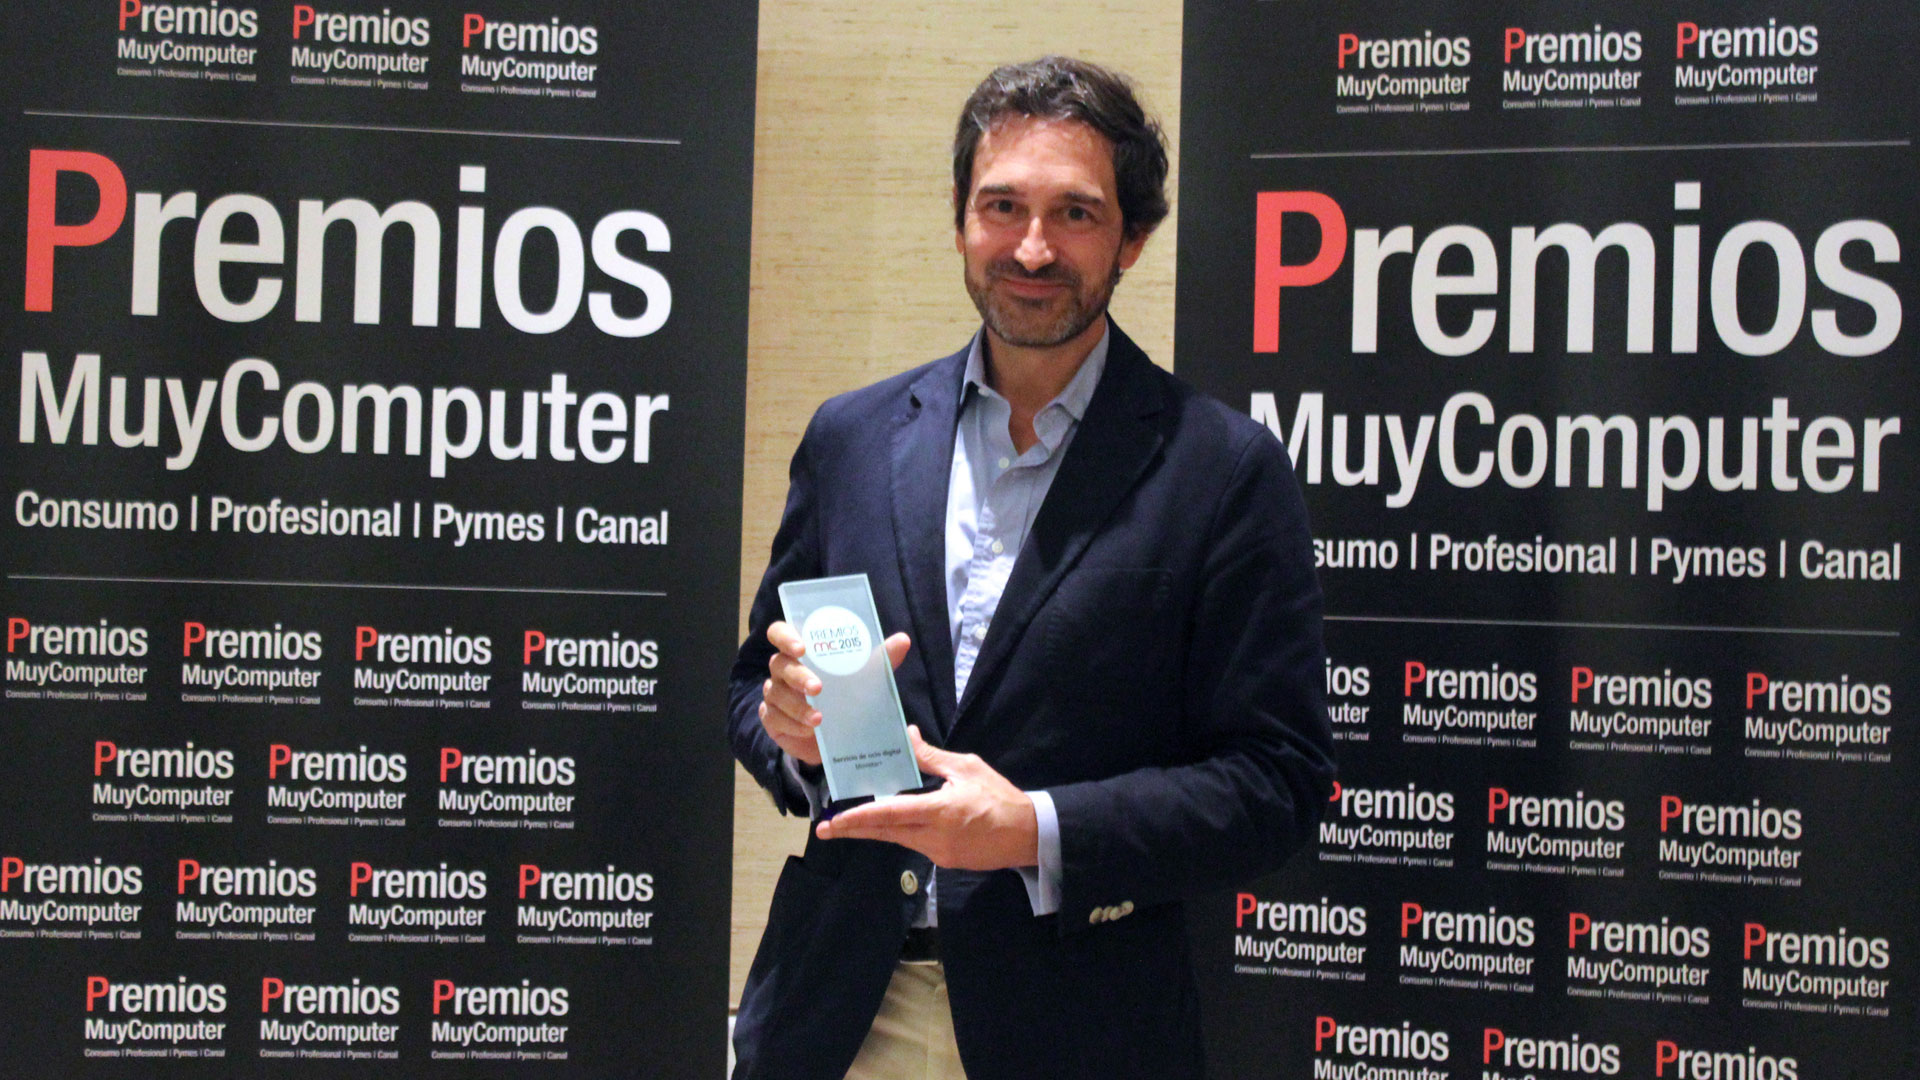 premios-mc2015-movistar-servicio-ocio-digital